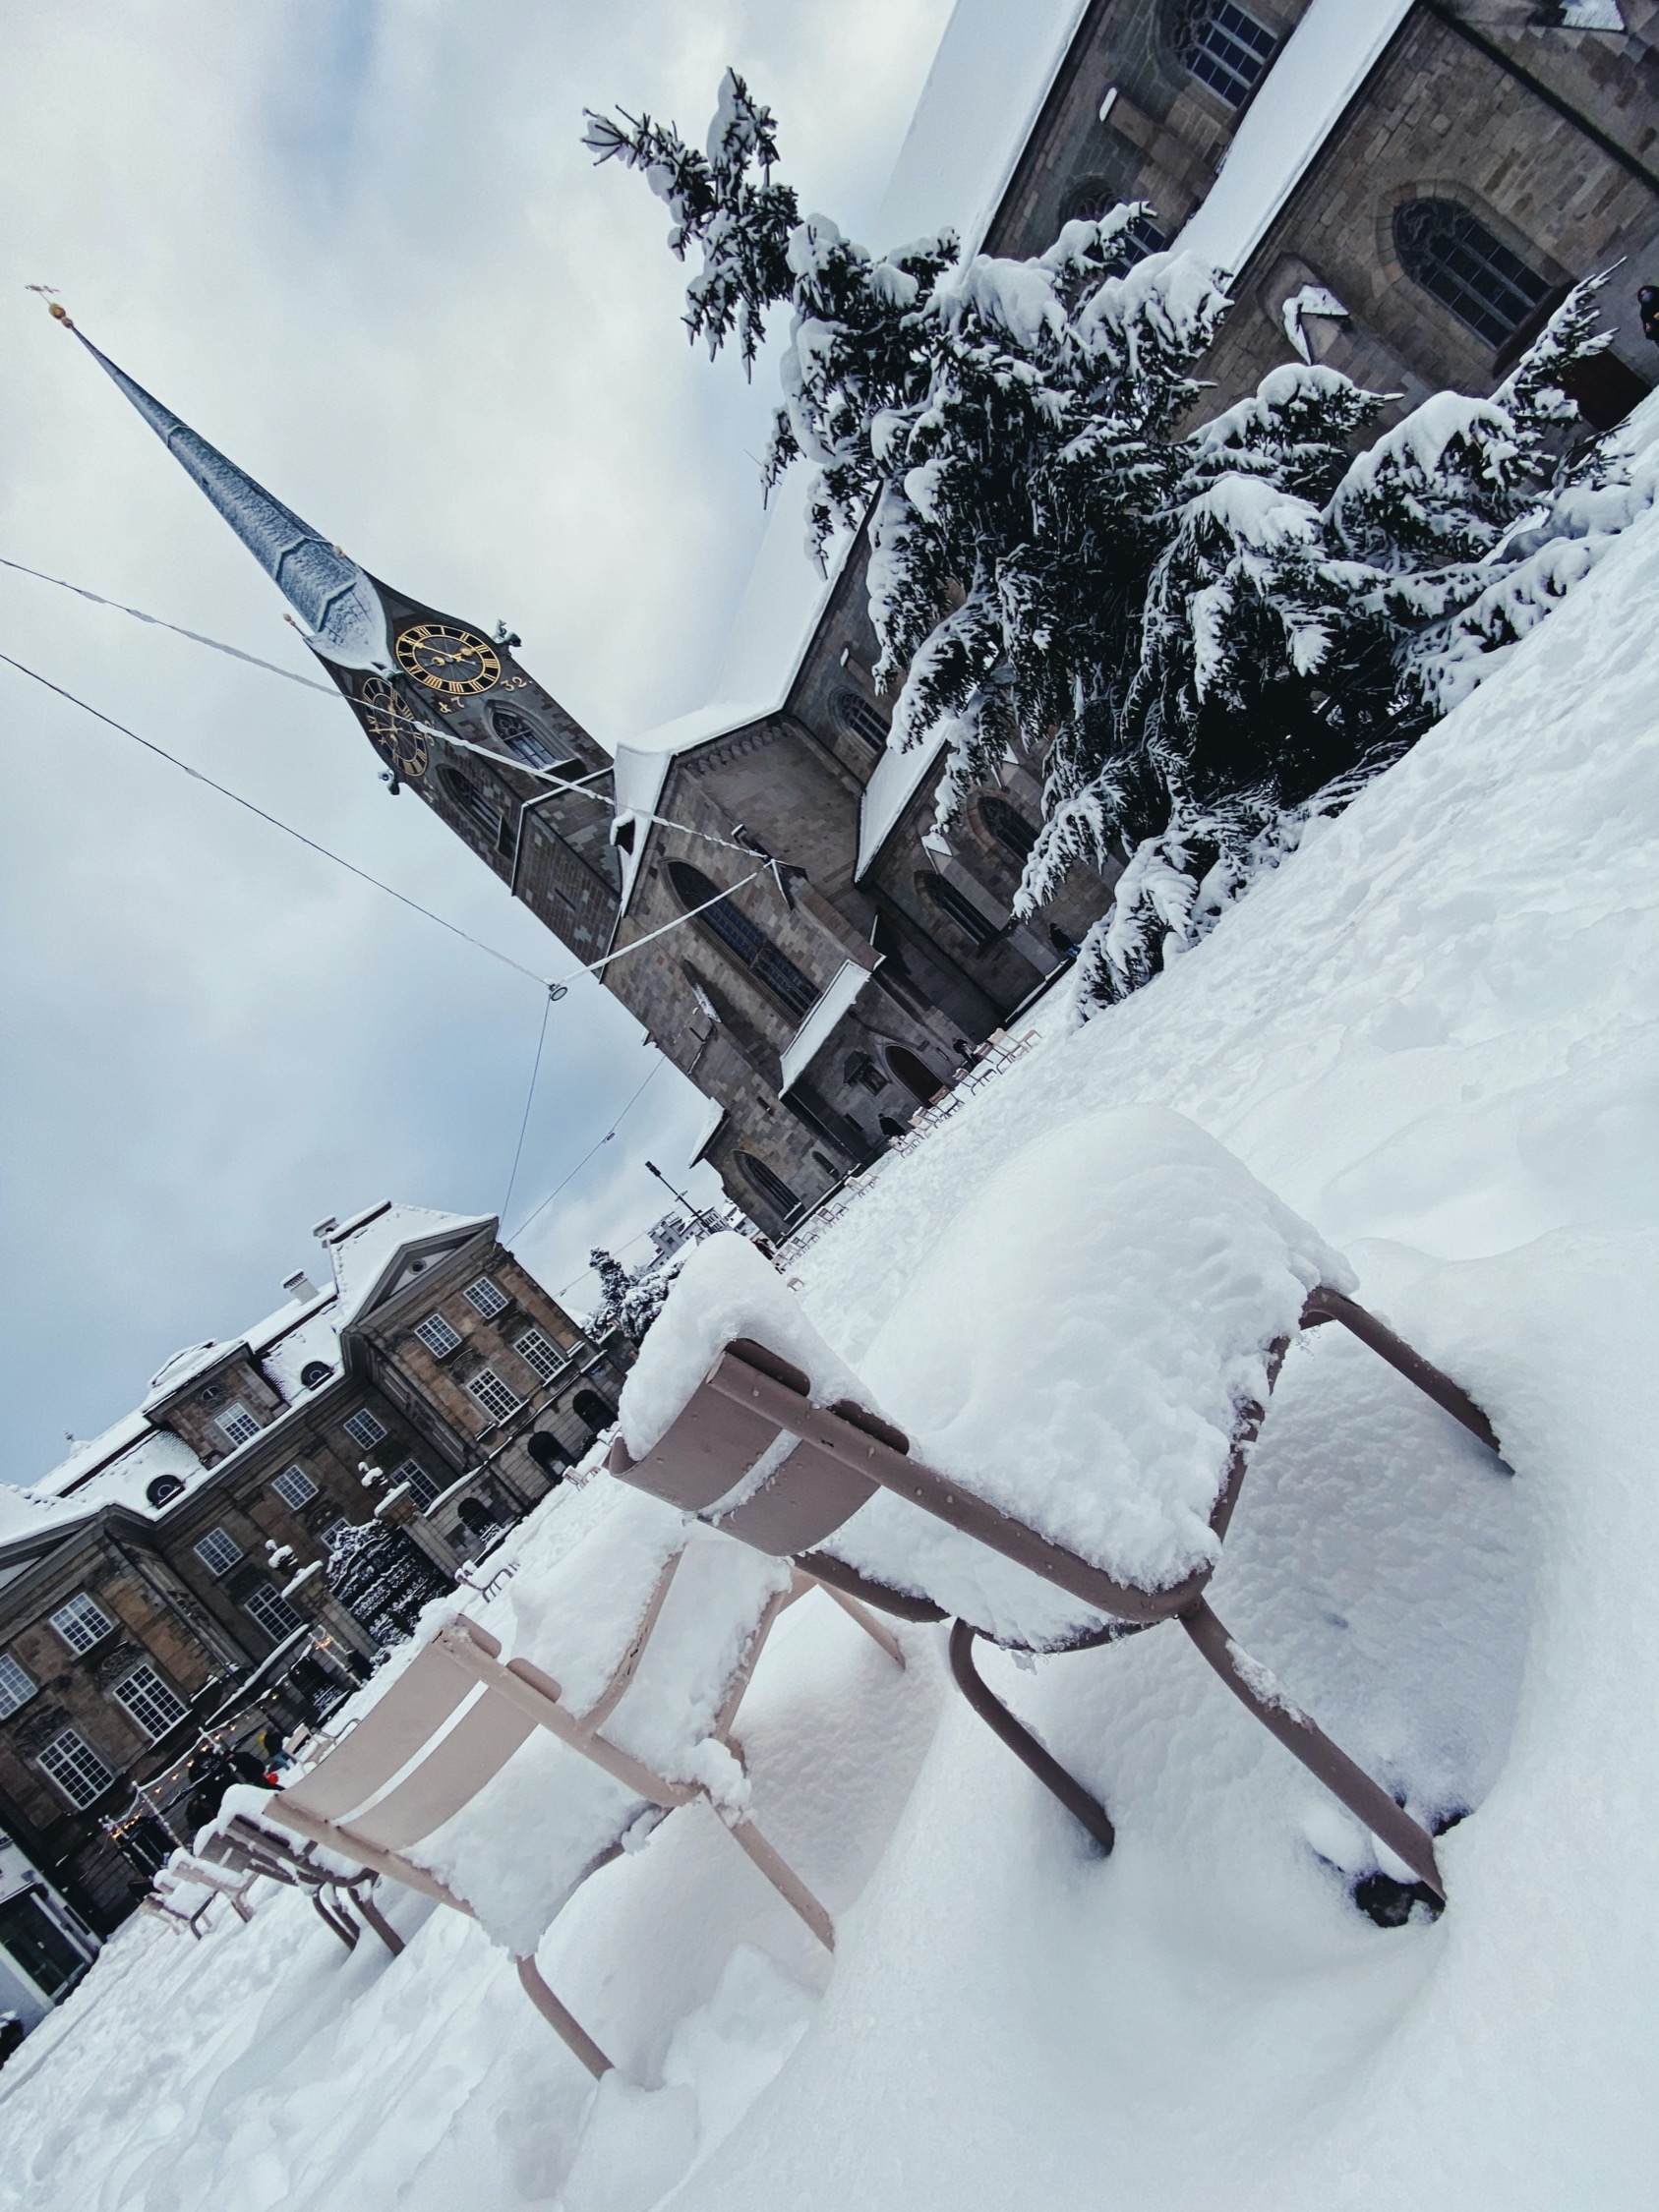 Zurich, Fraumunster, Record snowfall in January 2021